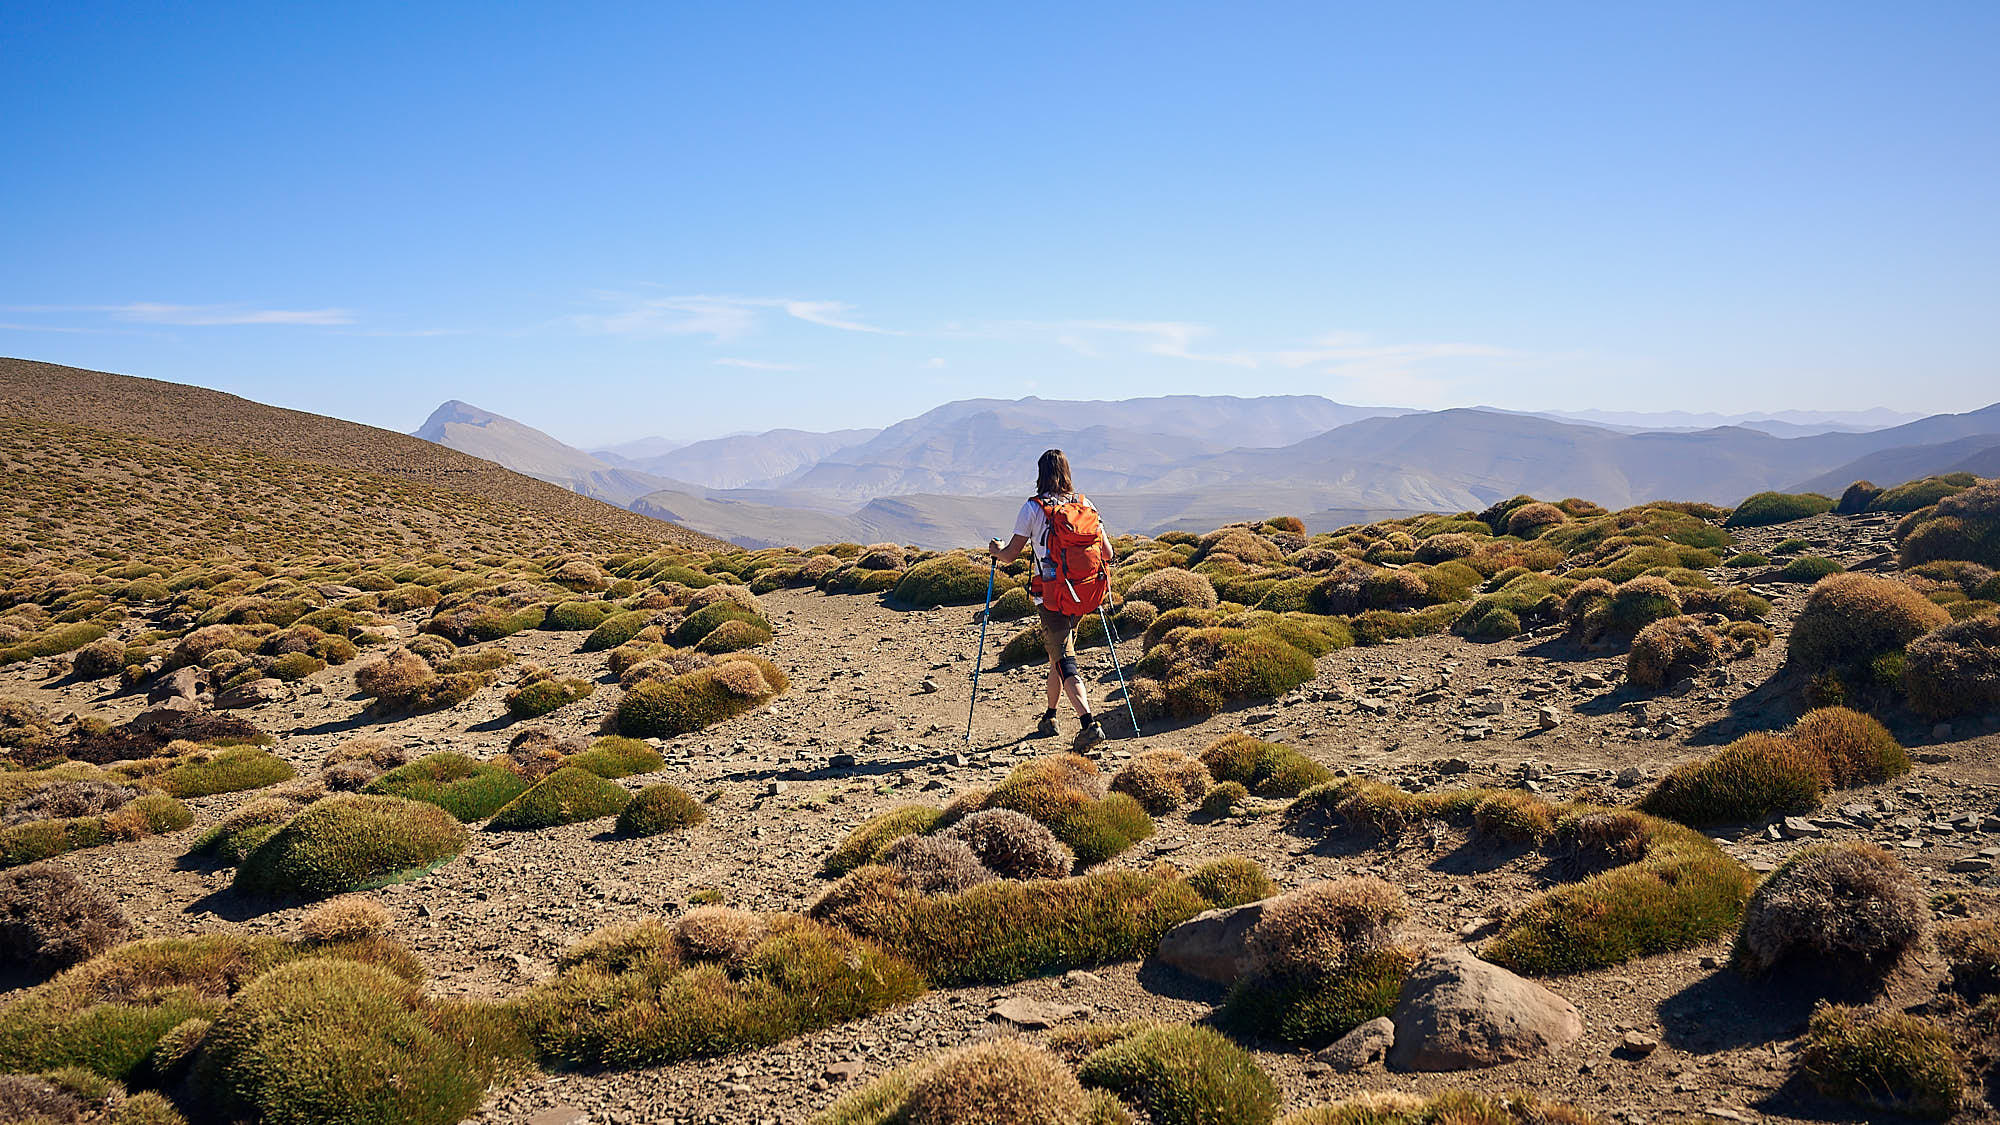 Climber hiking in Morocco's High Atlas mountains